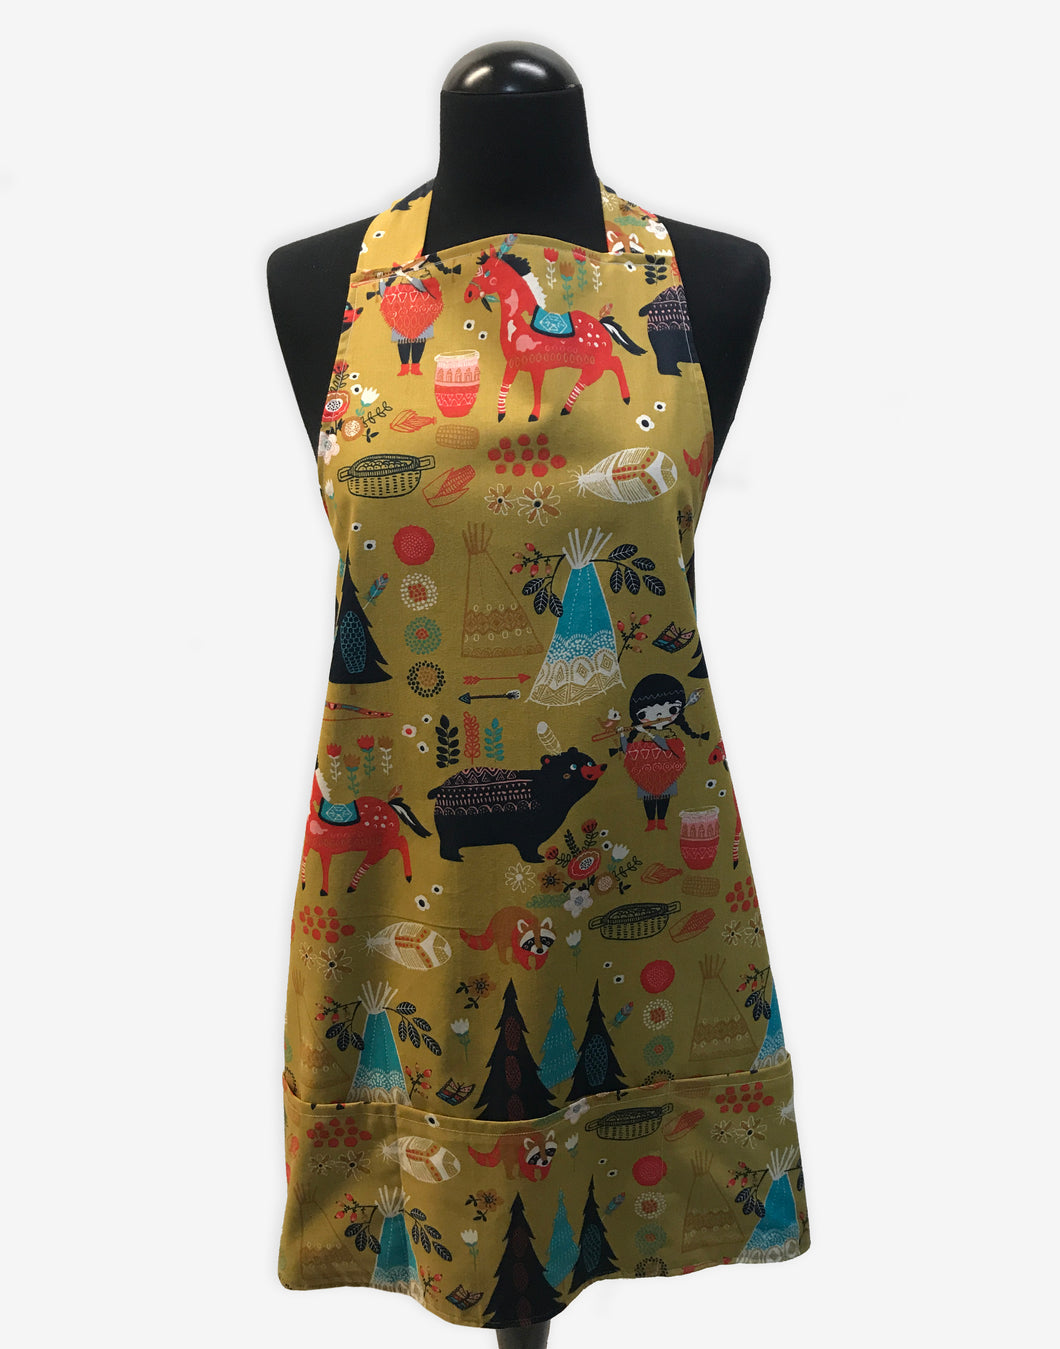 Wild Things Apron - InRugCo Studio & Gift Shop